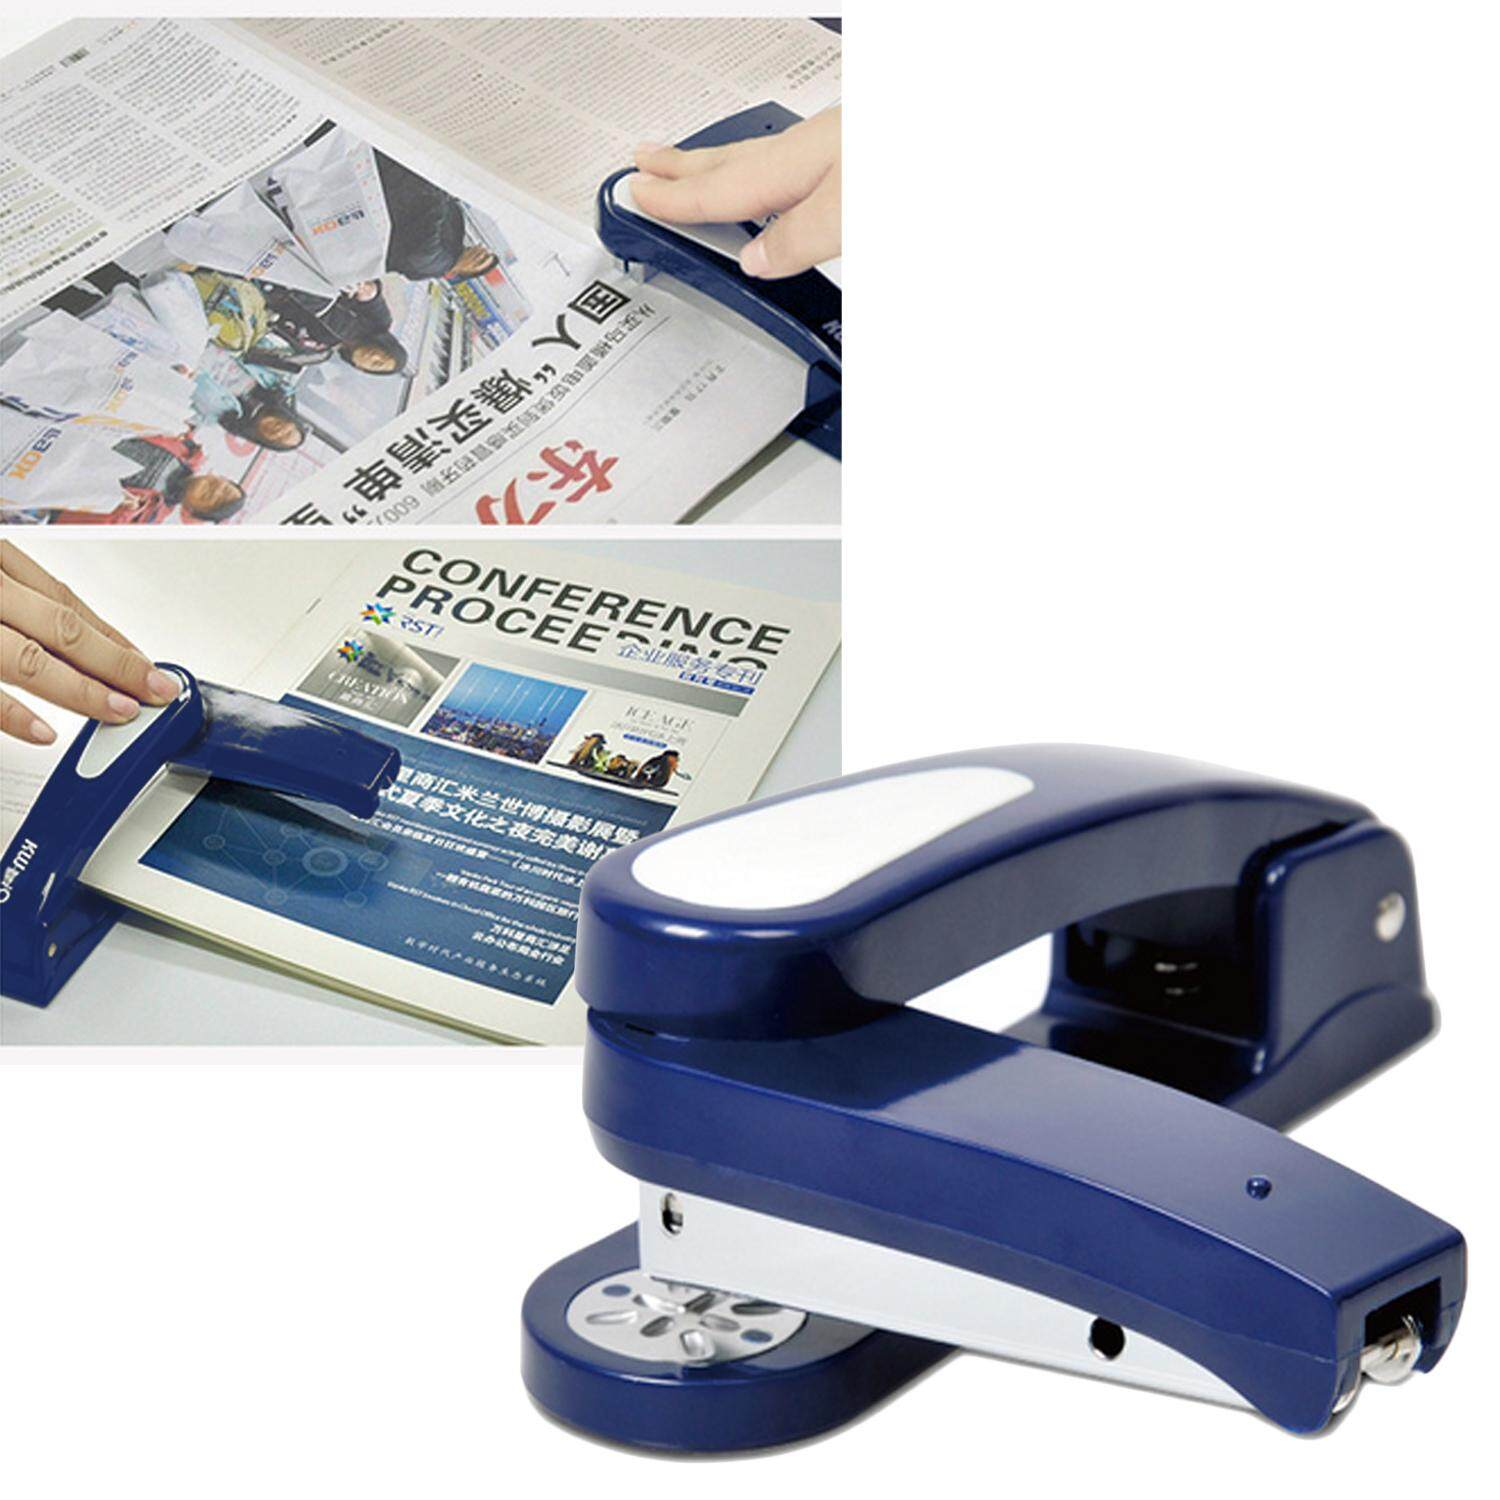 360 Degree Rotating Stapler For Desk School Home Office Supplies 24/6mm 26/6mm Random Color By Elek.